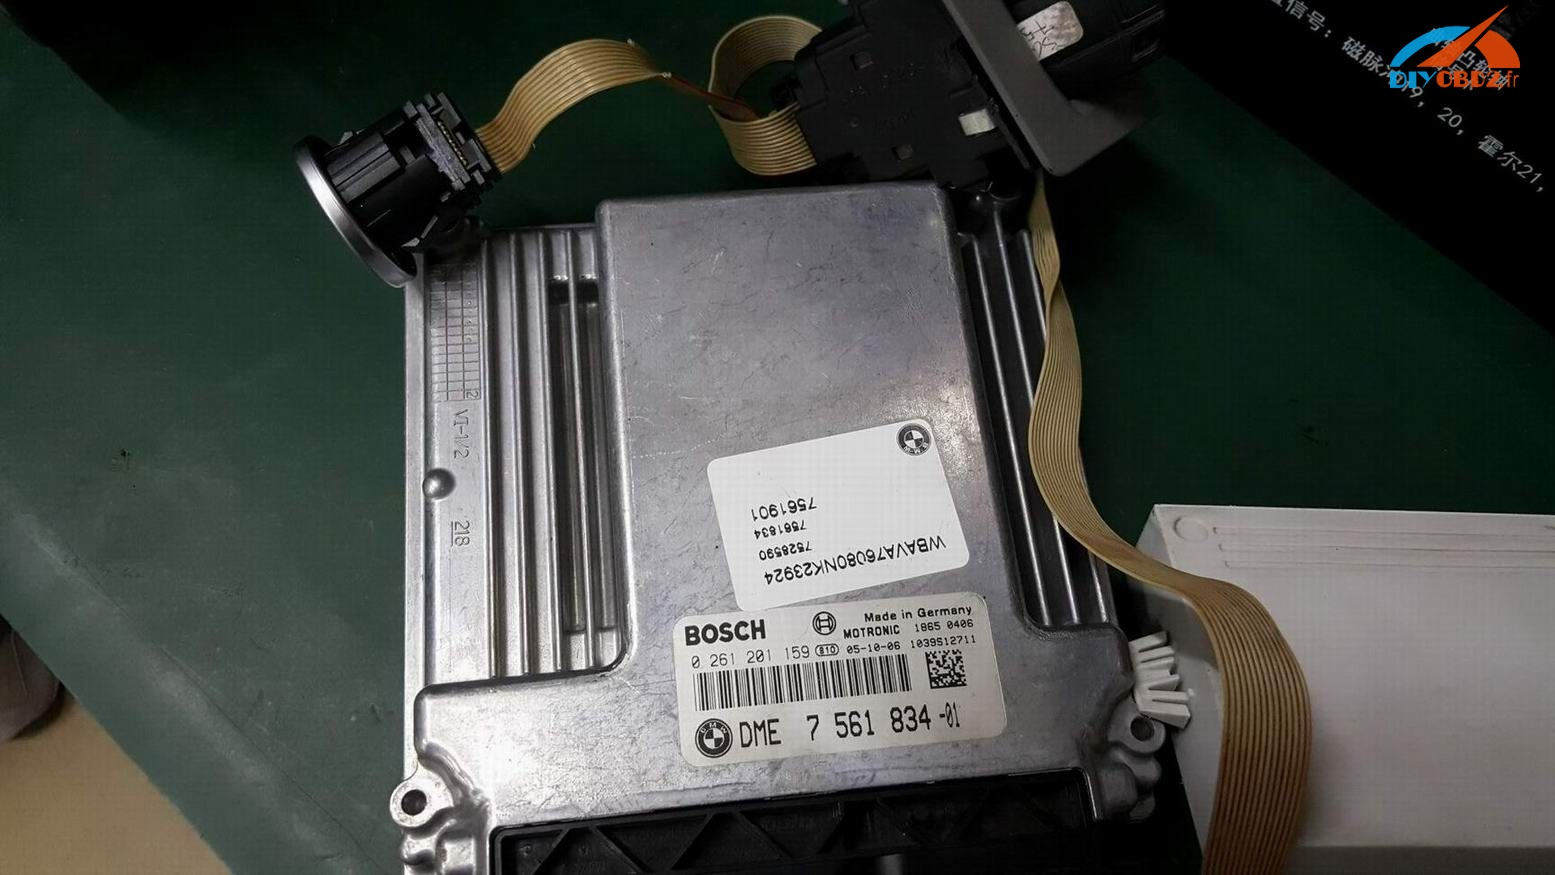 xtuner-x500-android-bmw-e90-oil-reset-2